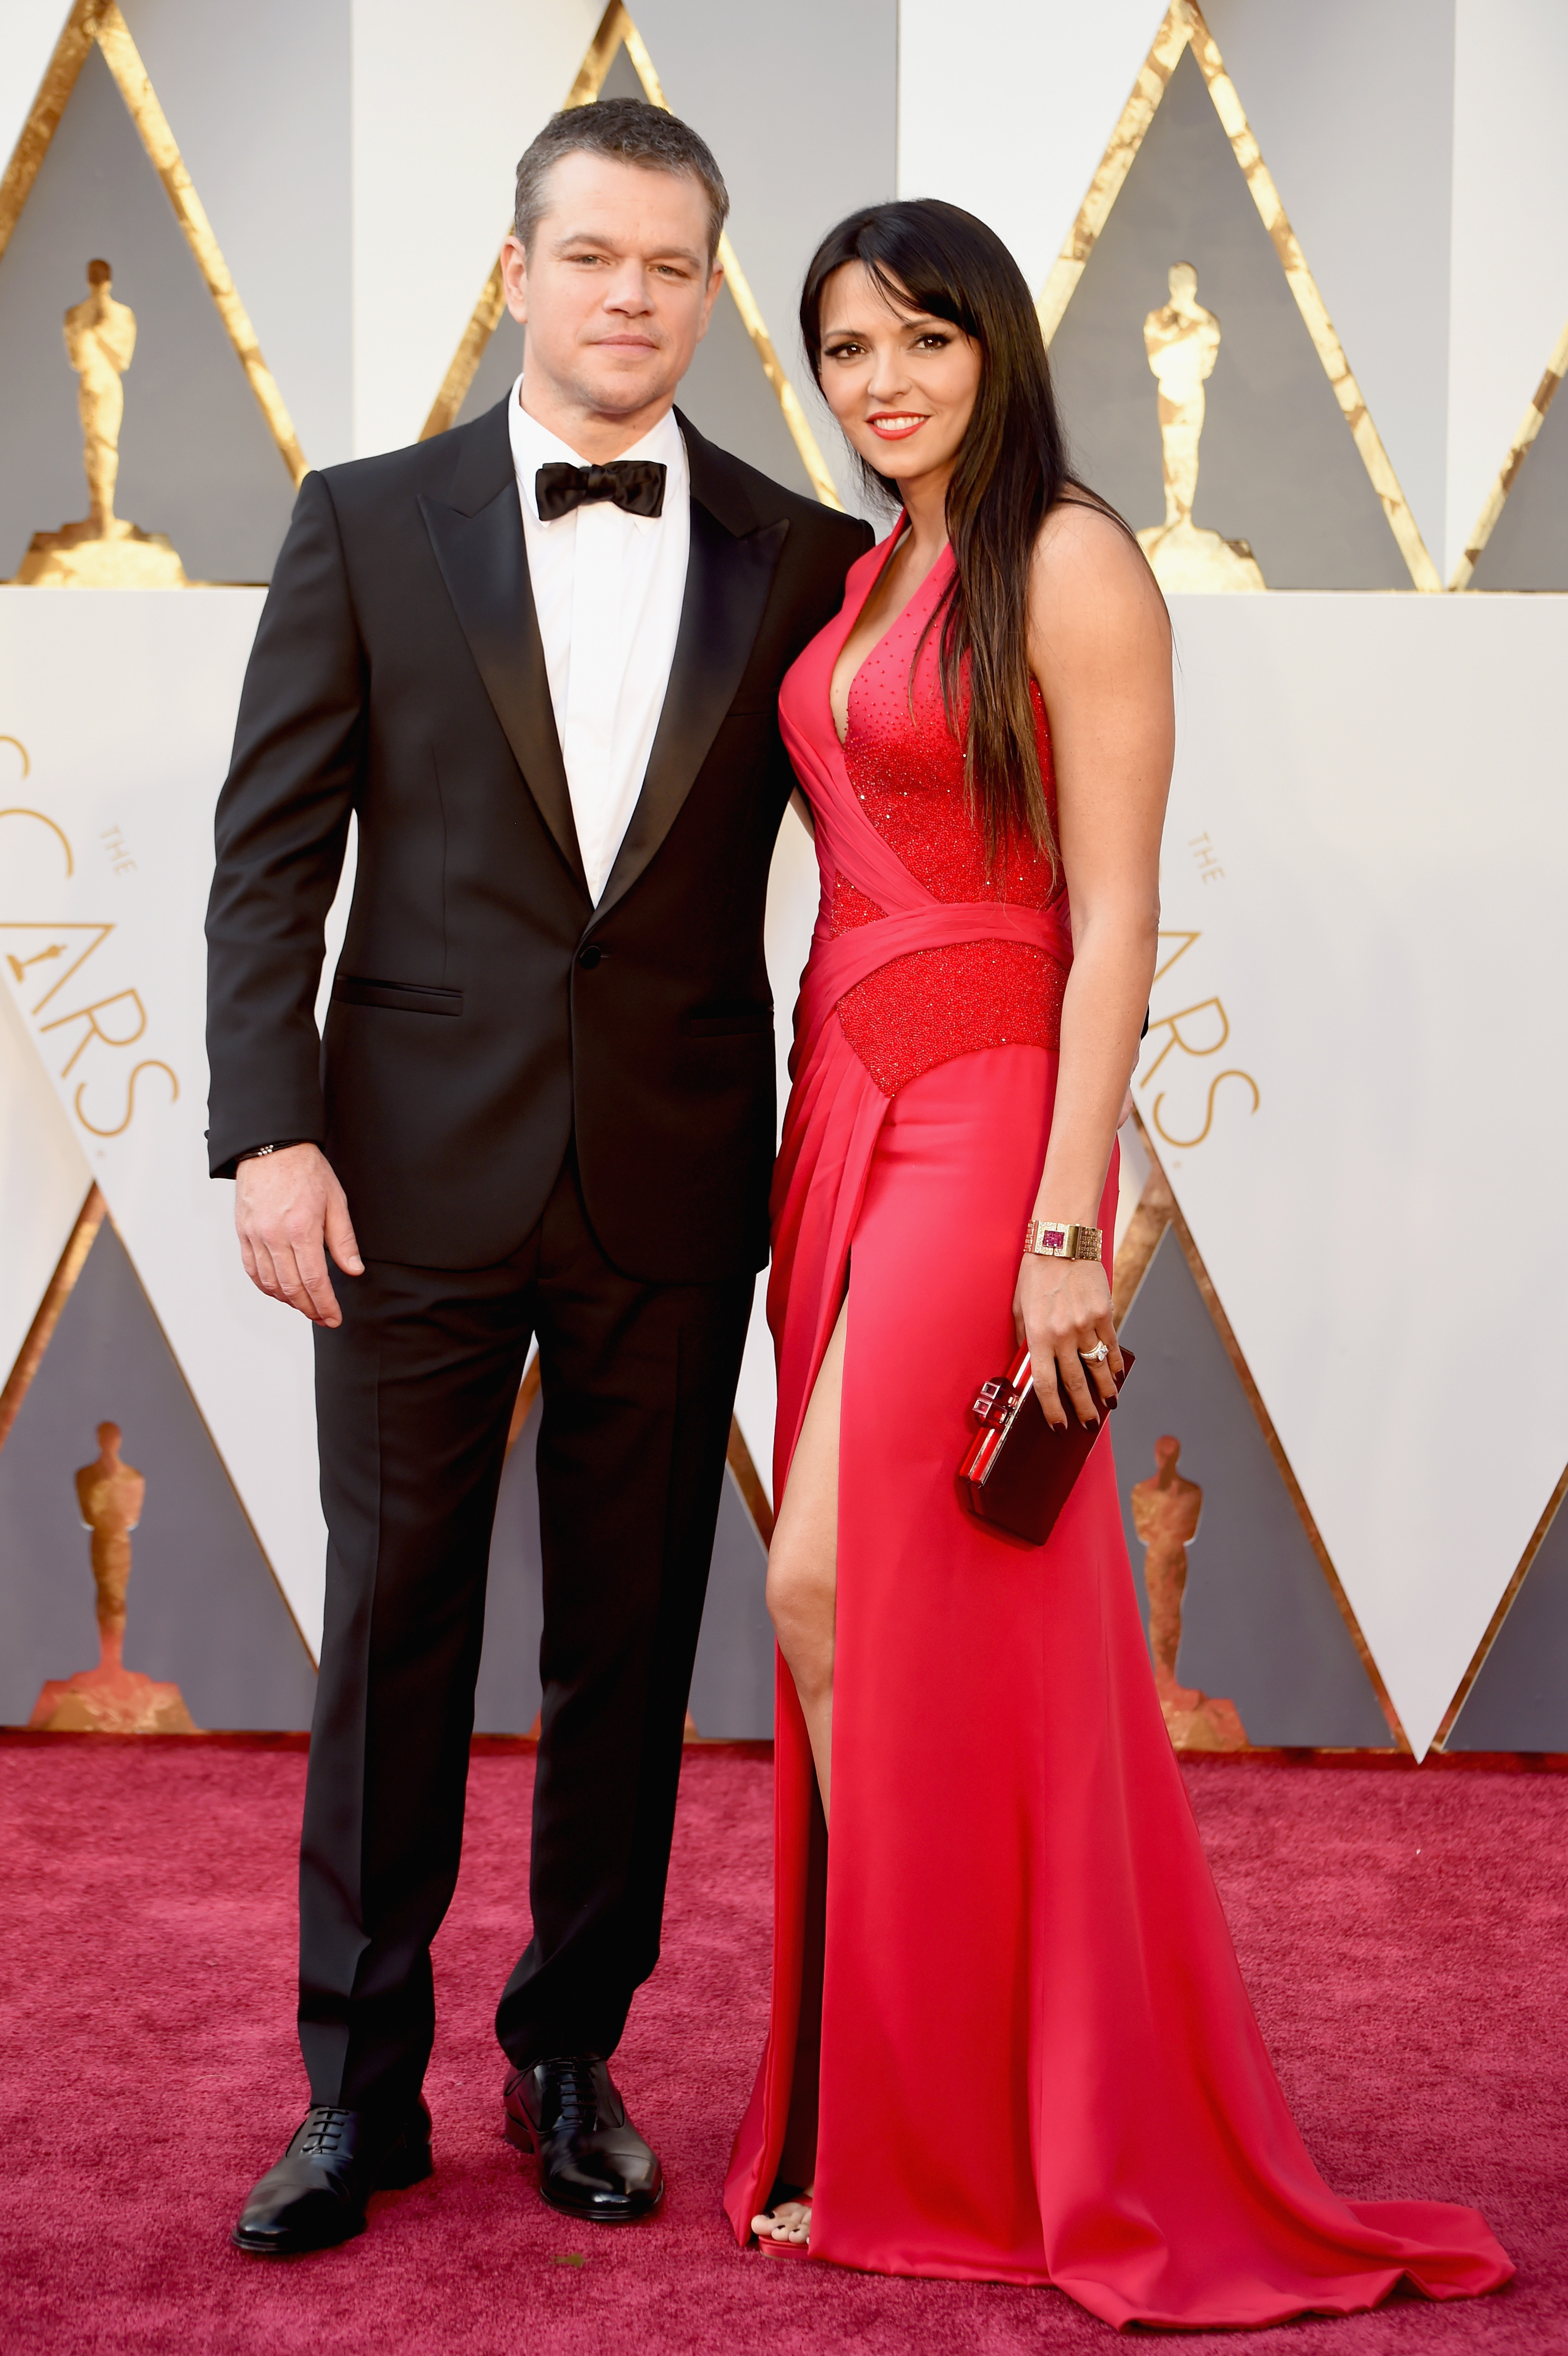 Matt Damon and Luciana Barroso attend the 88th Annual Academy Awards on Feb. 28, 2016 in Hollywood, Calif.